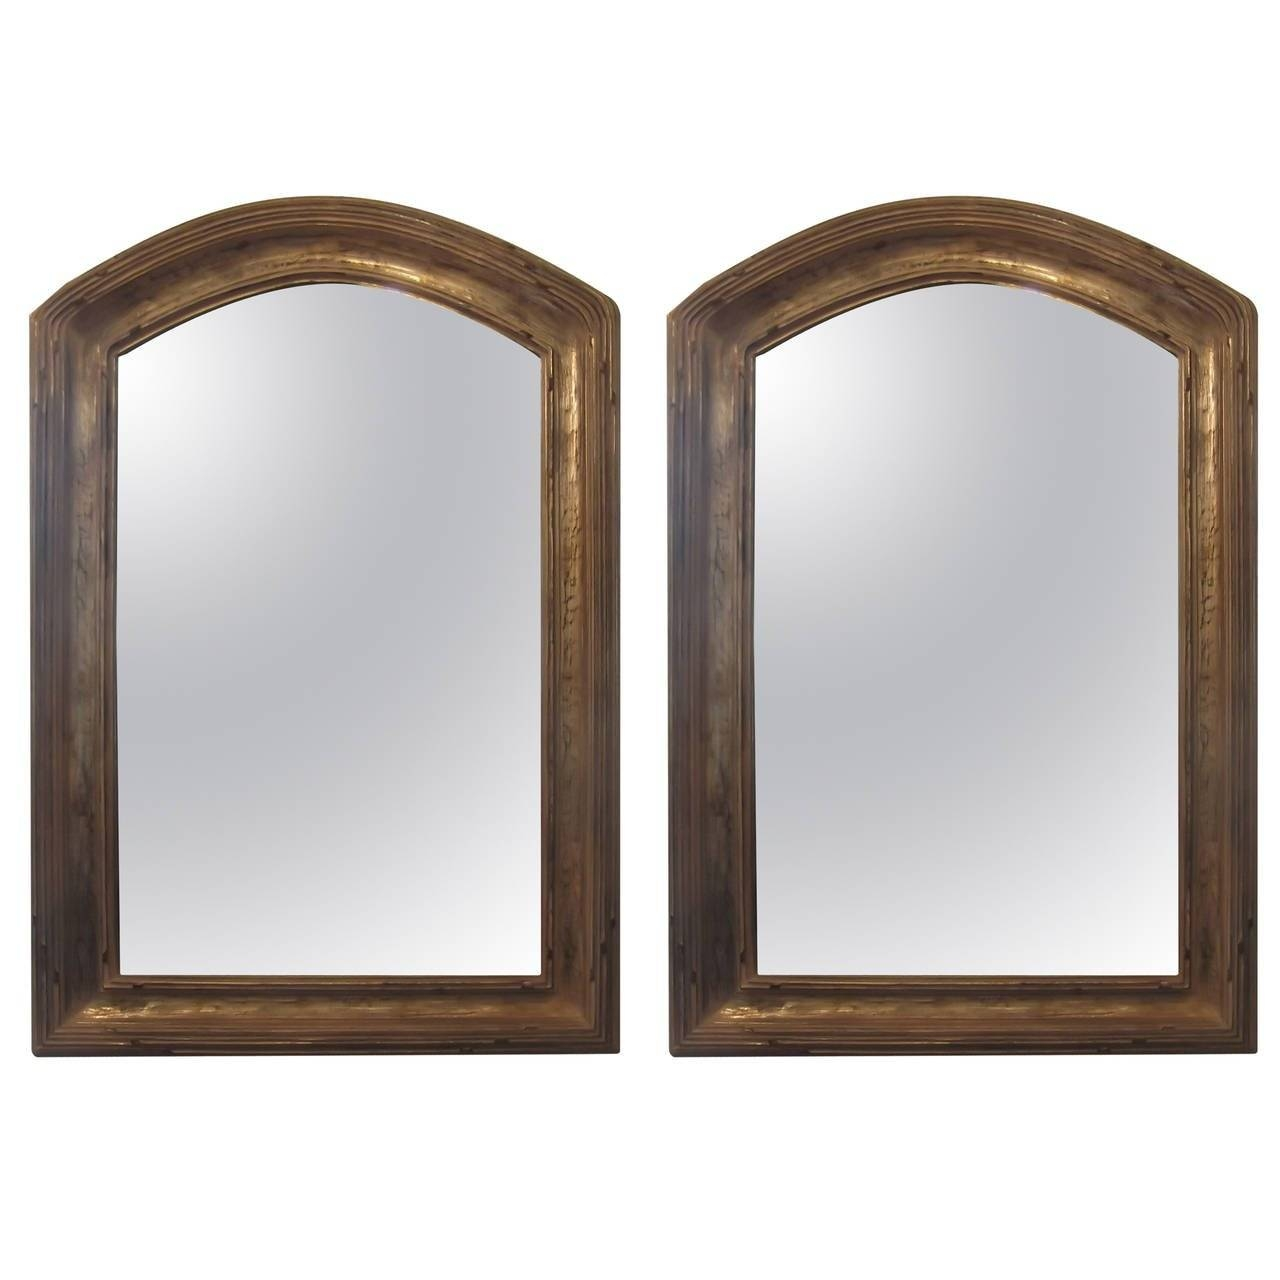 Pair Of Giltwood Arched Top Mirrors At 1Stdibs regarding Curved Top Mirrors (Image 14 of 15)